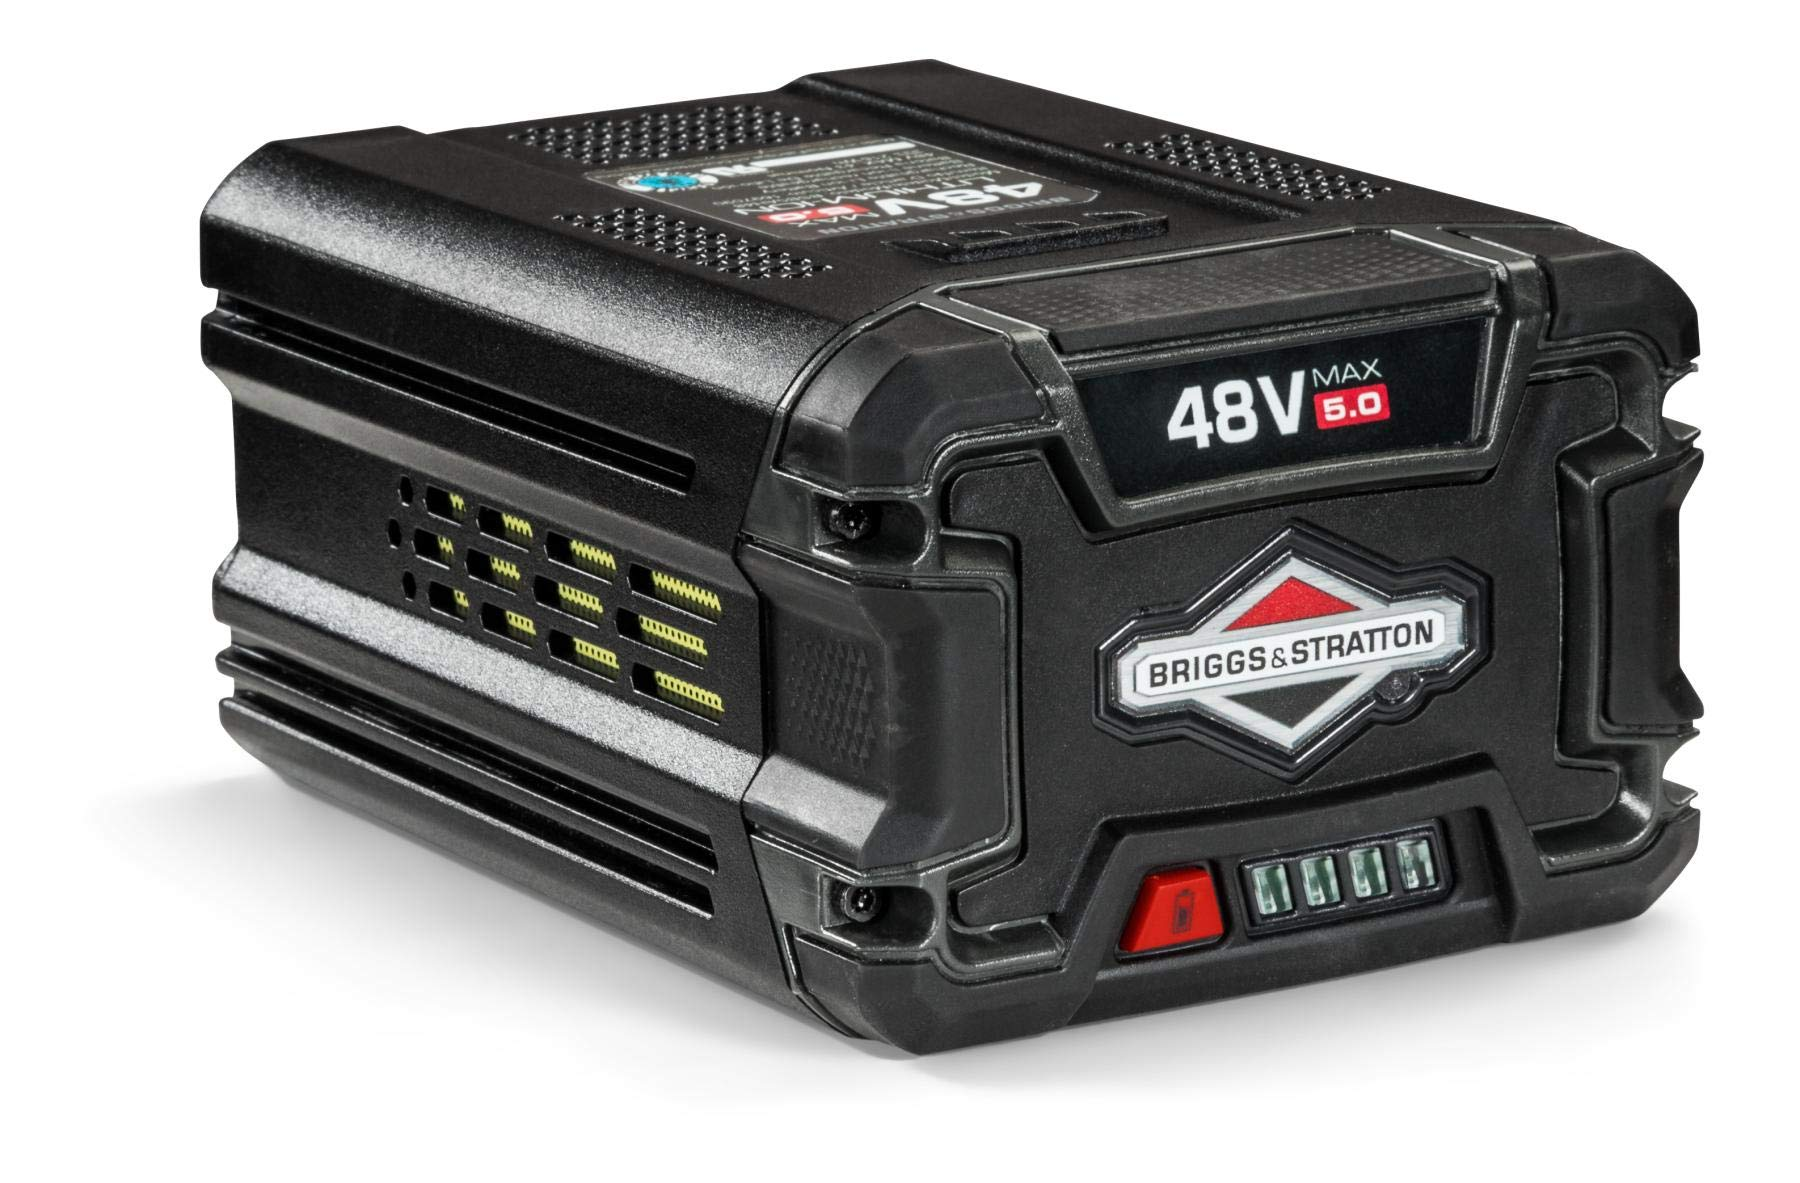 Briggs & Stratton 48V MAX 5.0 Lithium-ion Battery for Snapper HD Electric Cordless tools, 1697090, BSB5AH48